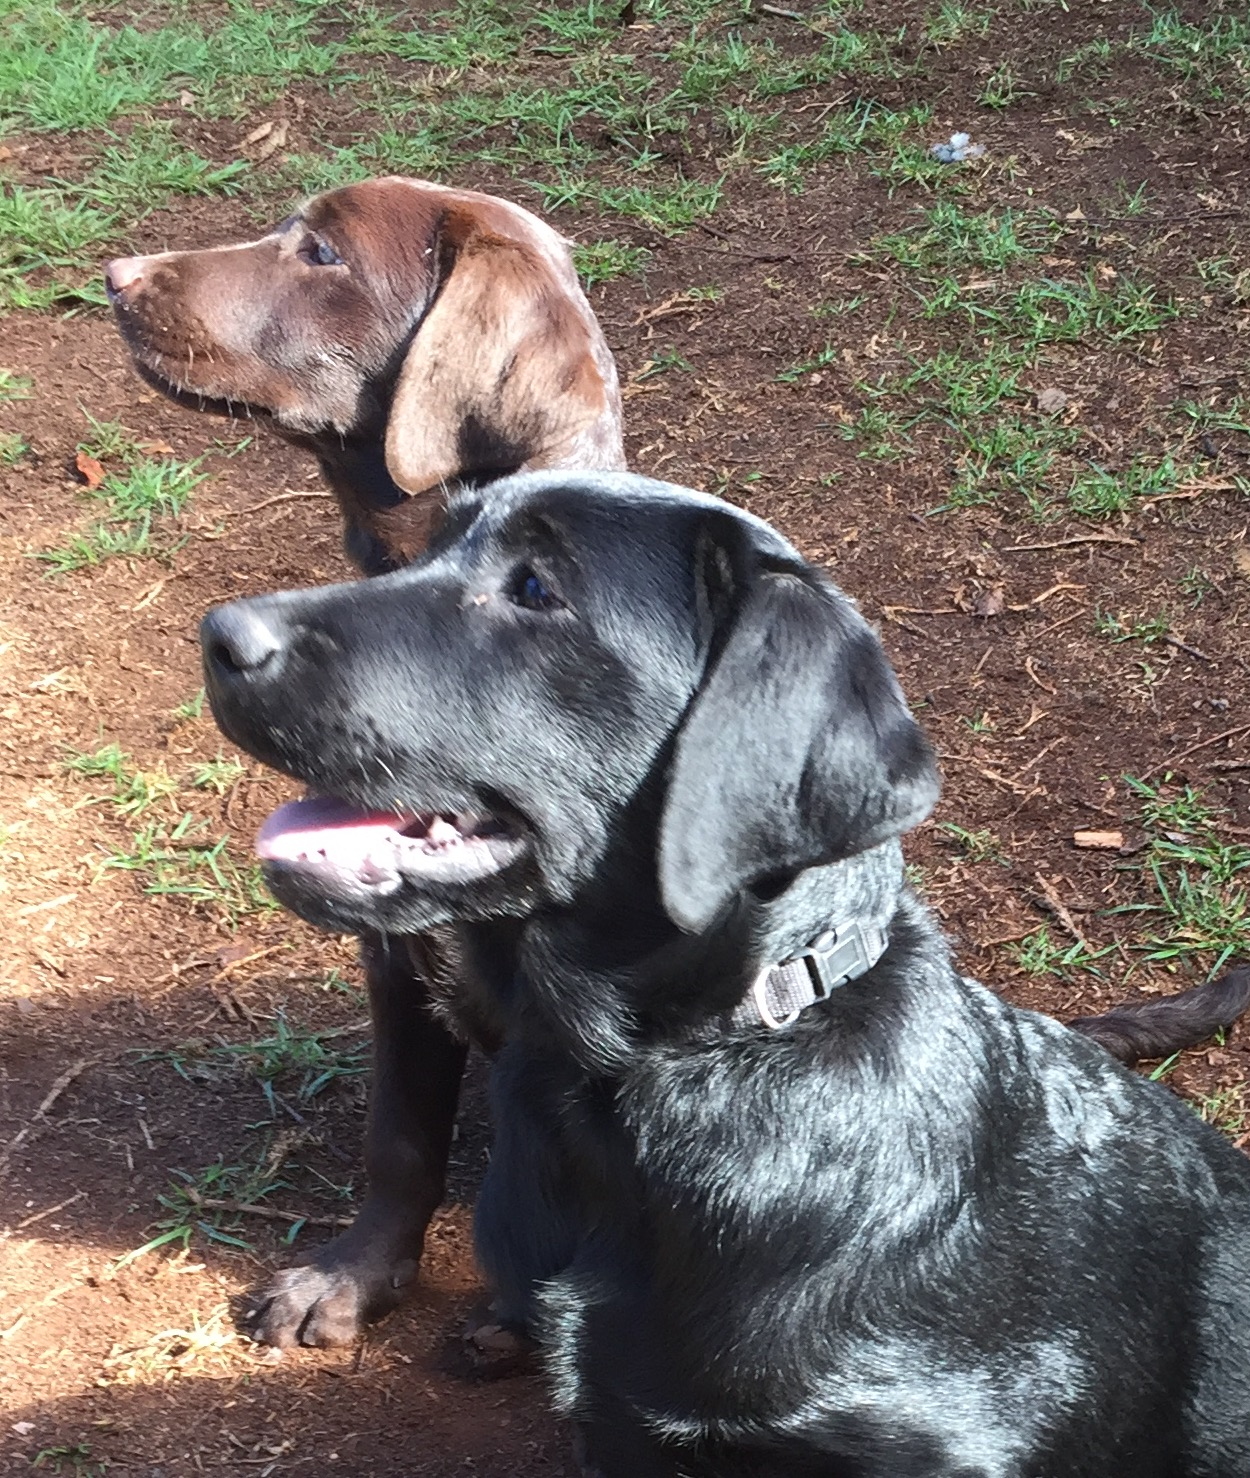 Polly & Fudge are Ebony's girls from her last chocolate and black litter of labrador pups